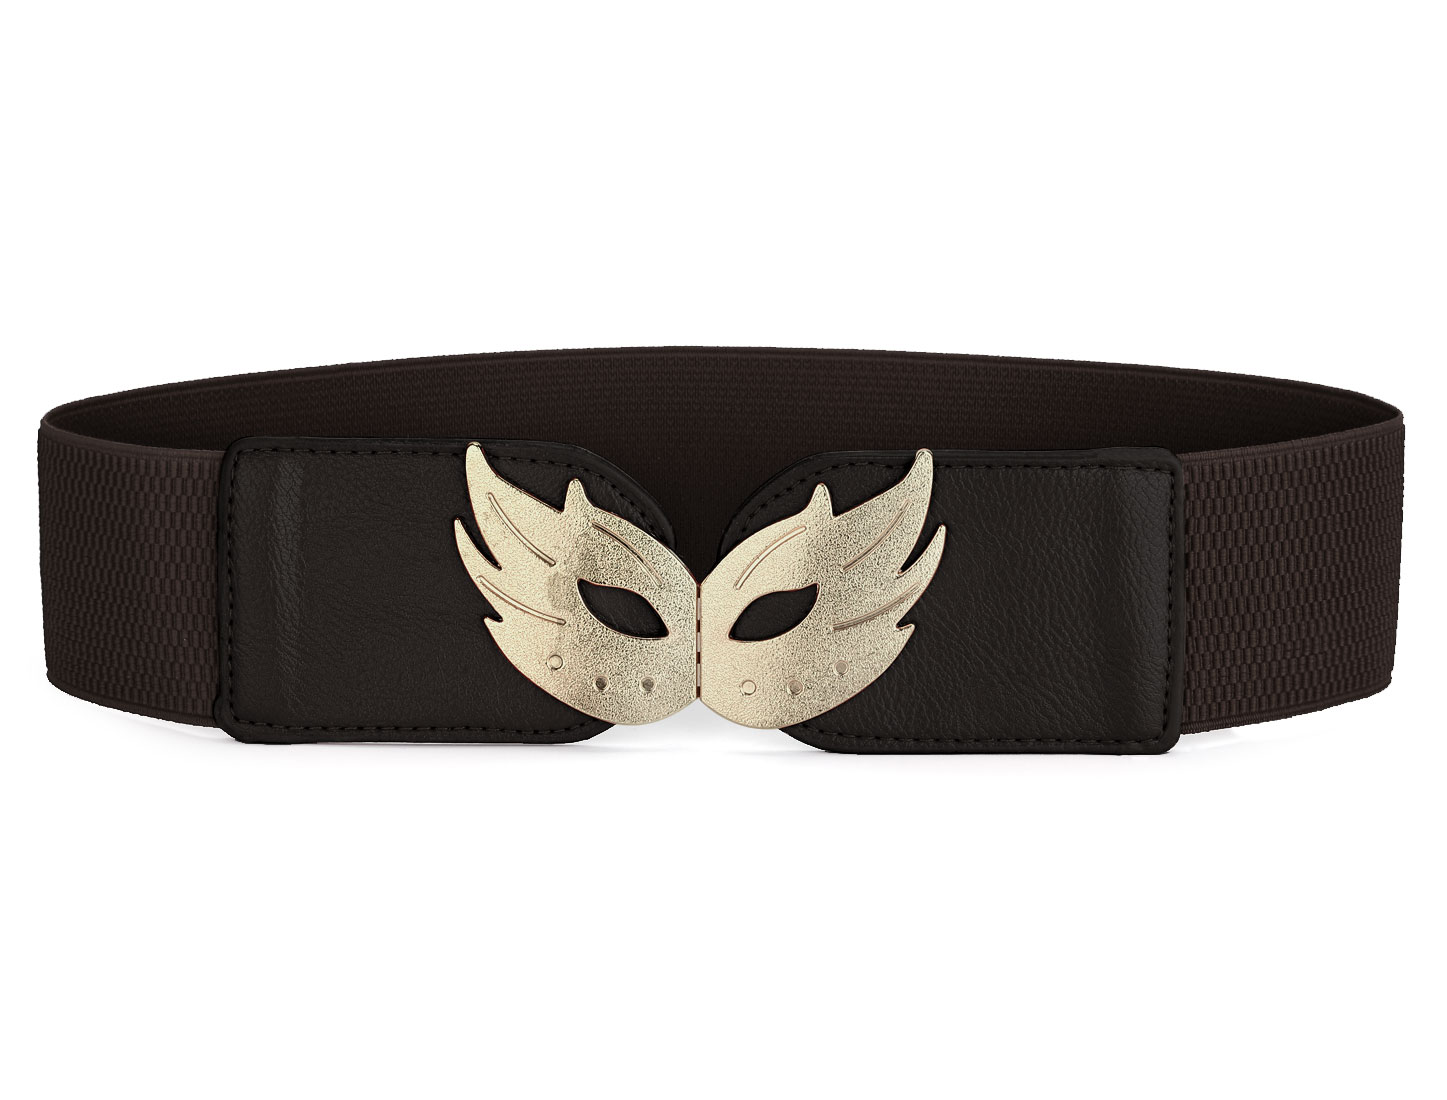 Dark Brown Mash Shaped Interlocking Buckle Stretchy Belt for Ladies